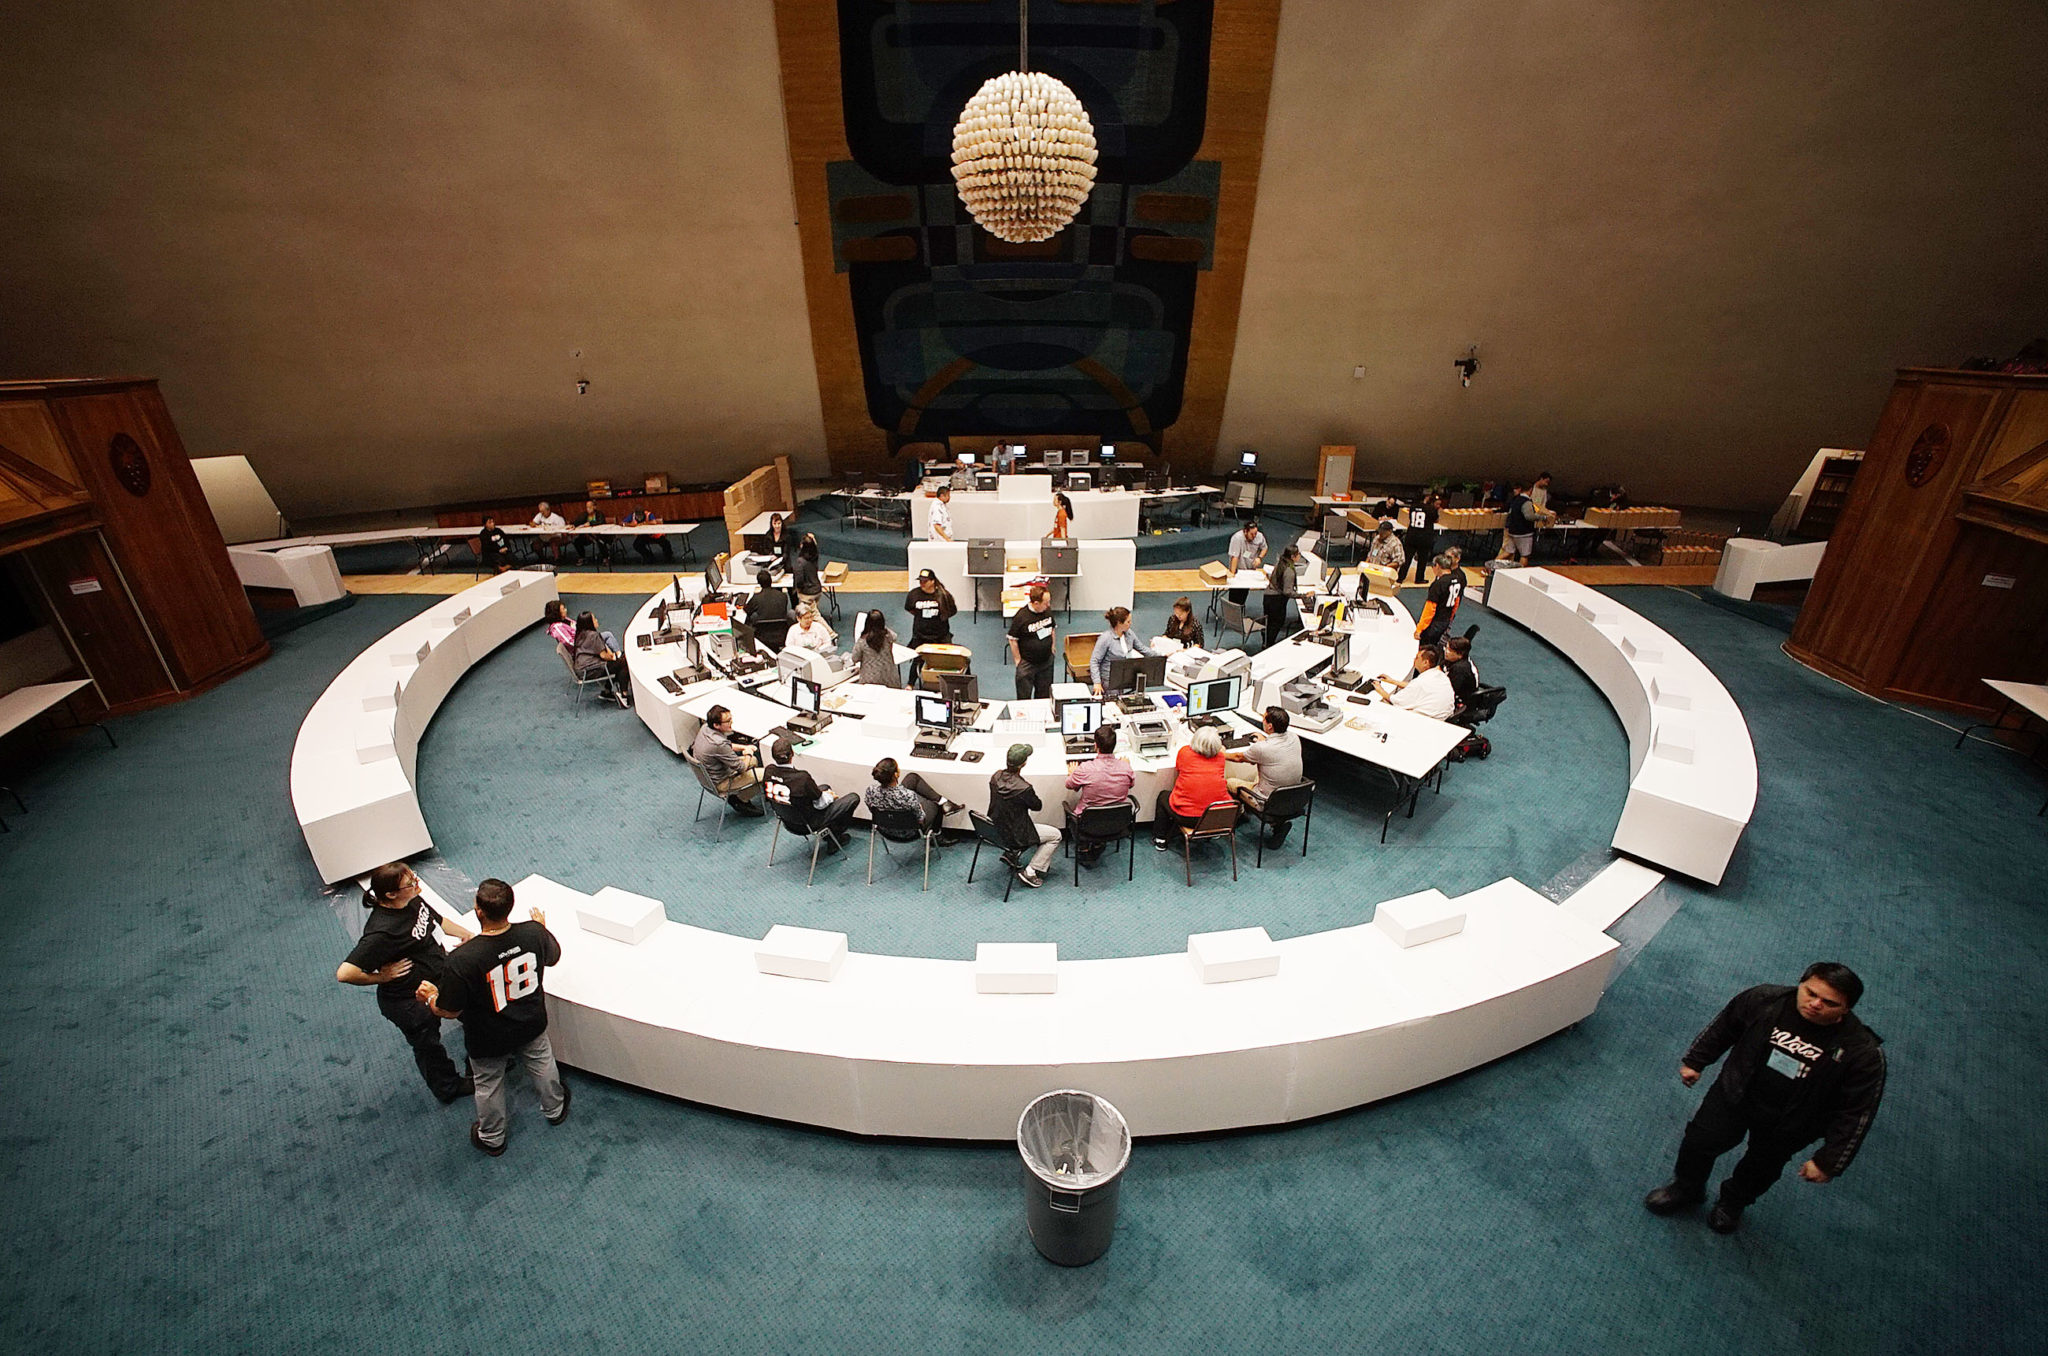 <p>Office of Elections officials set up shop in the Senate chambers at the Capitol to tally up the results.</p>